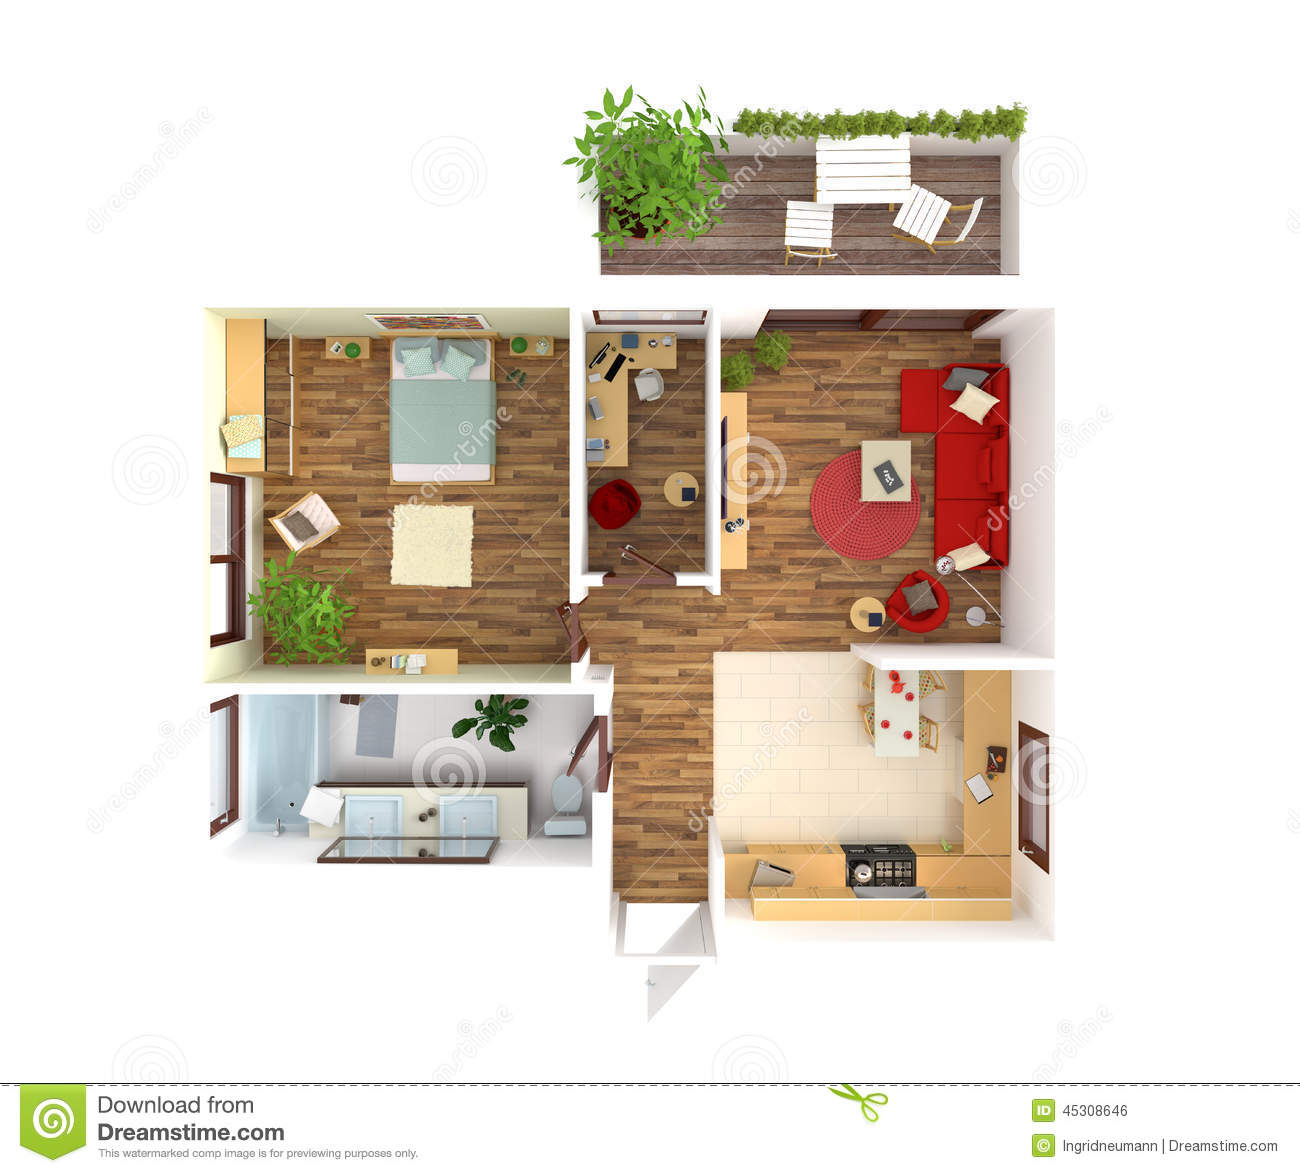 Nurse's Cottage floorplan 4